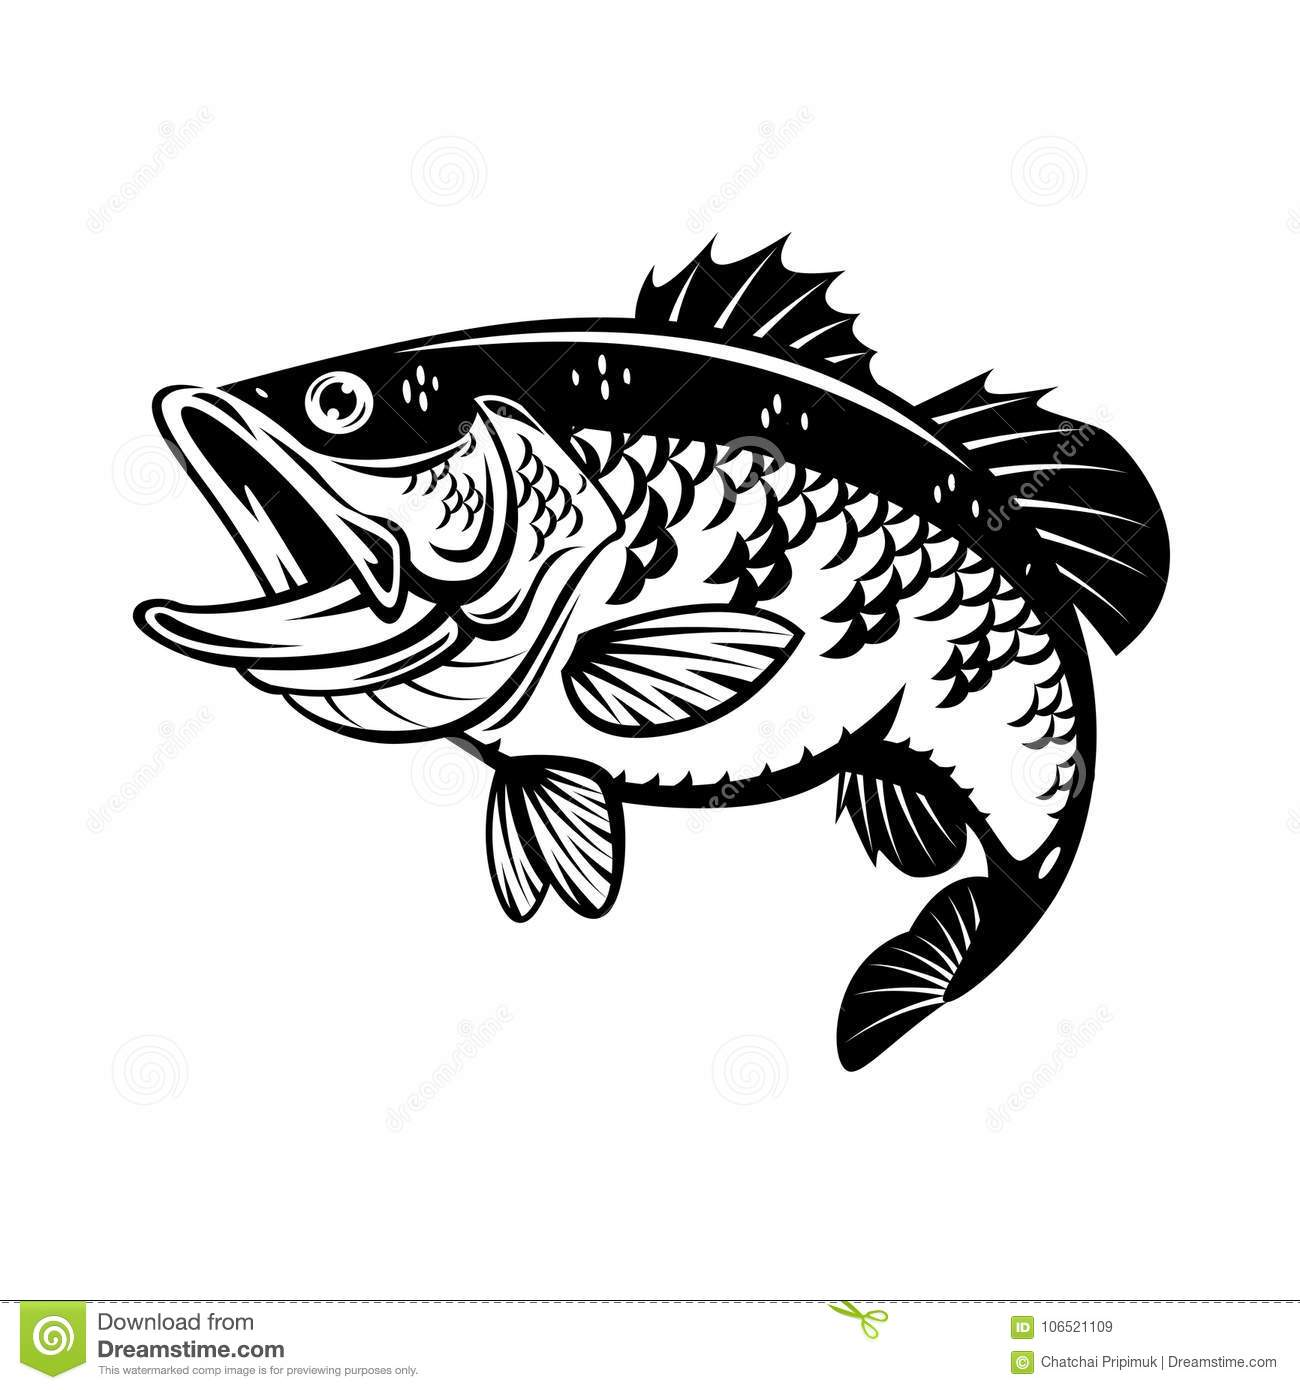 Graphic Bass Fish Vector Stock Vector Illustration Of Logo 106521109